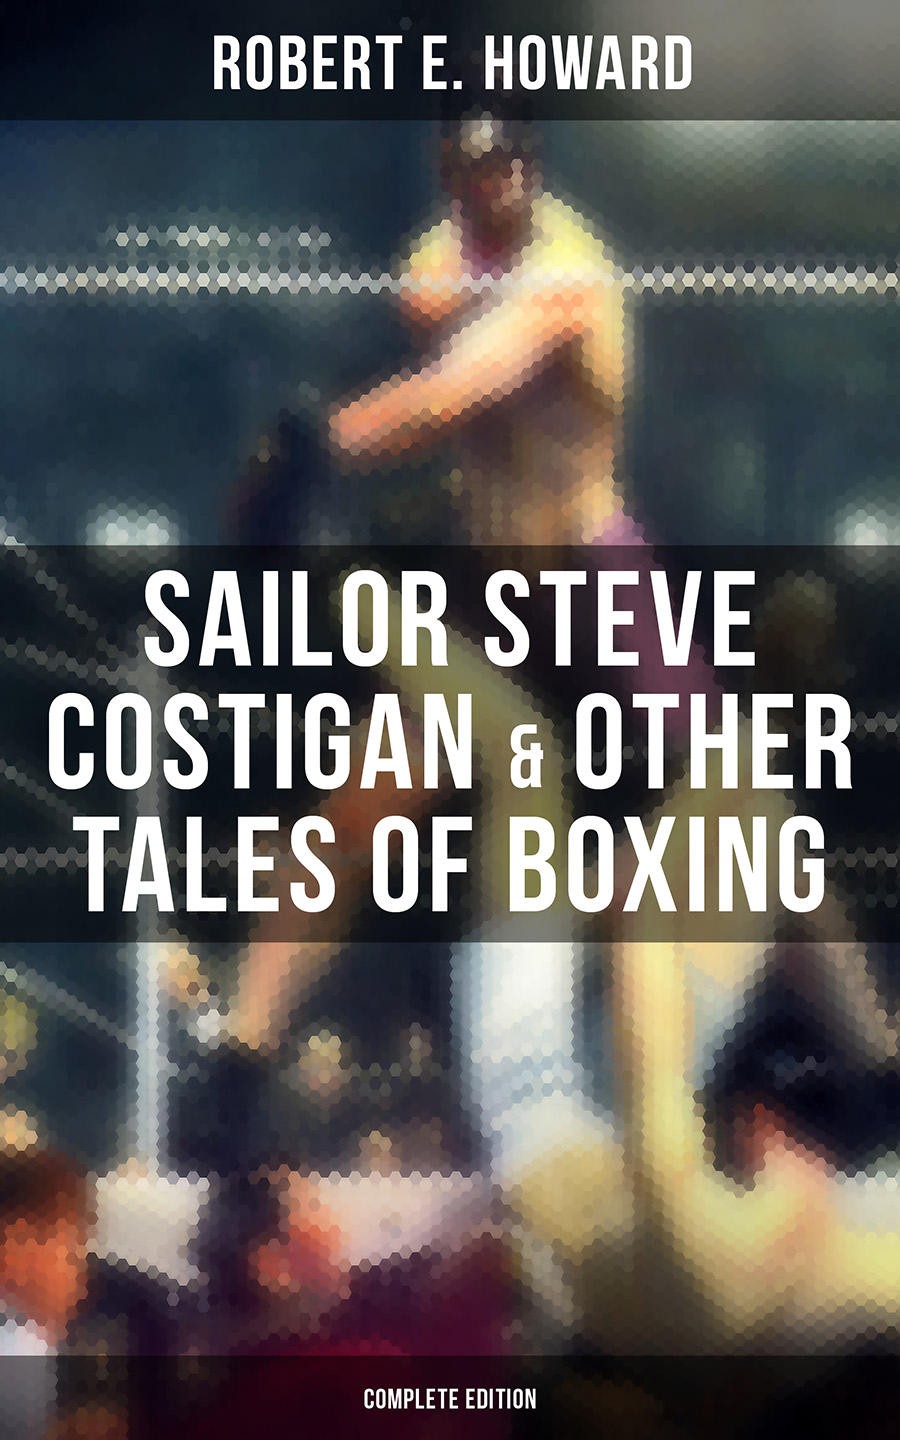 Sailor Steve Costigan & Other Tales of Boxing - Complete Edition